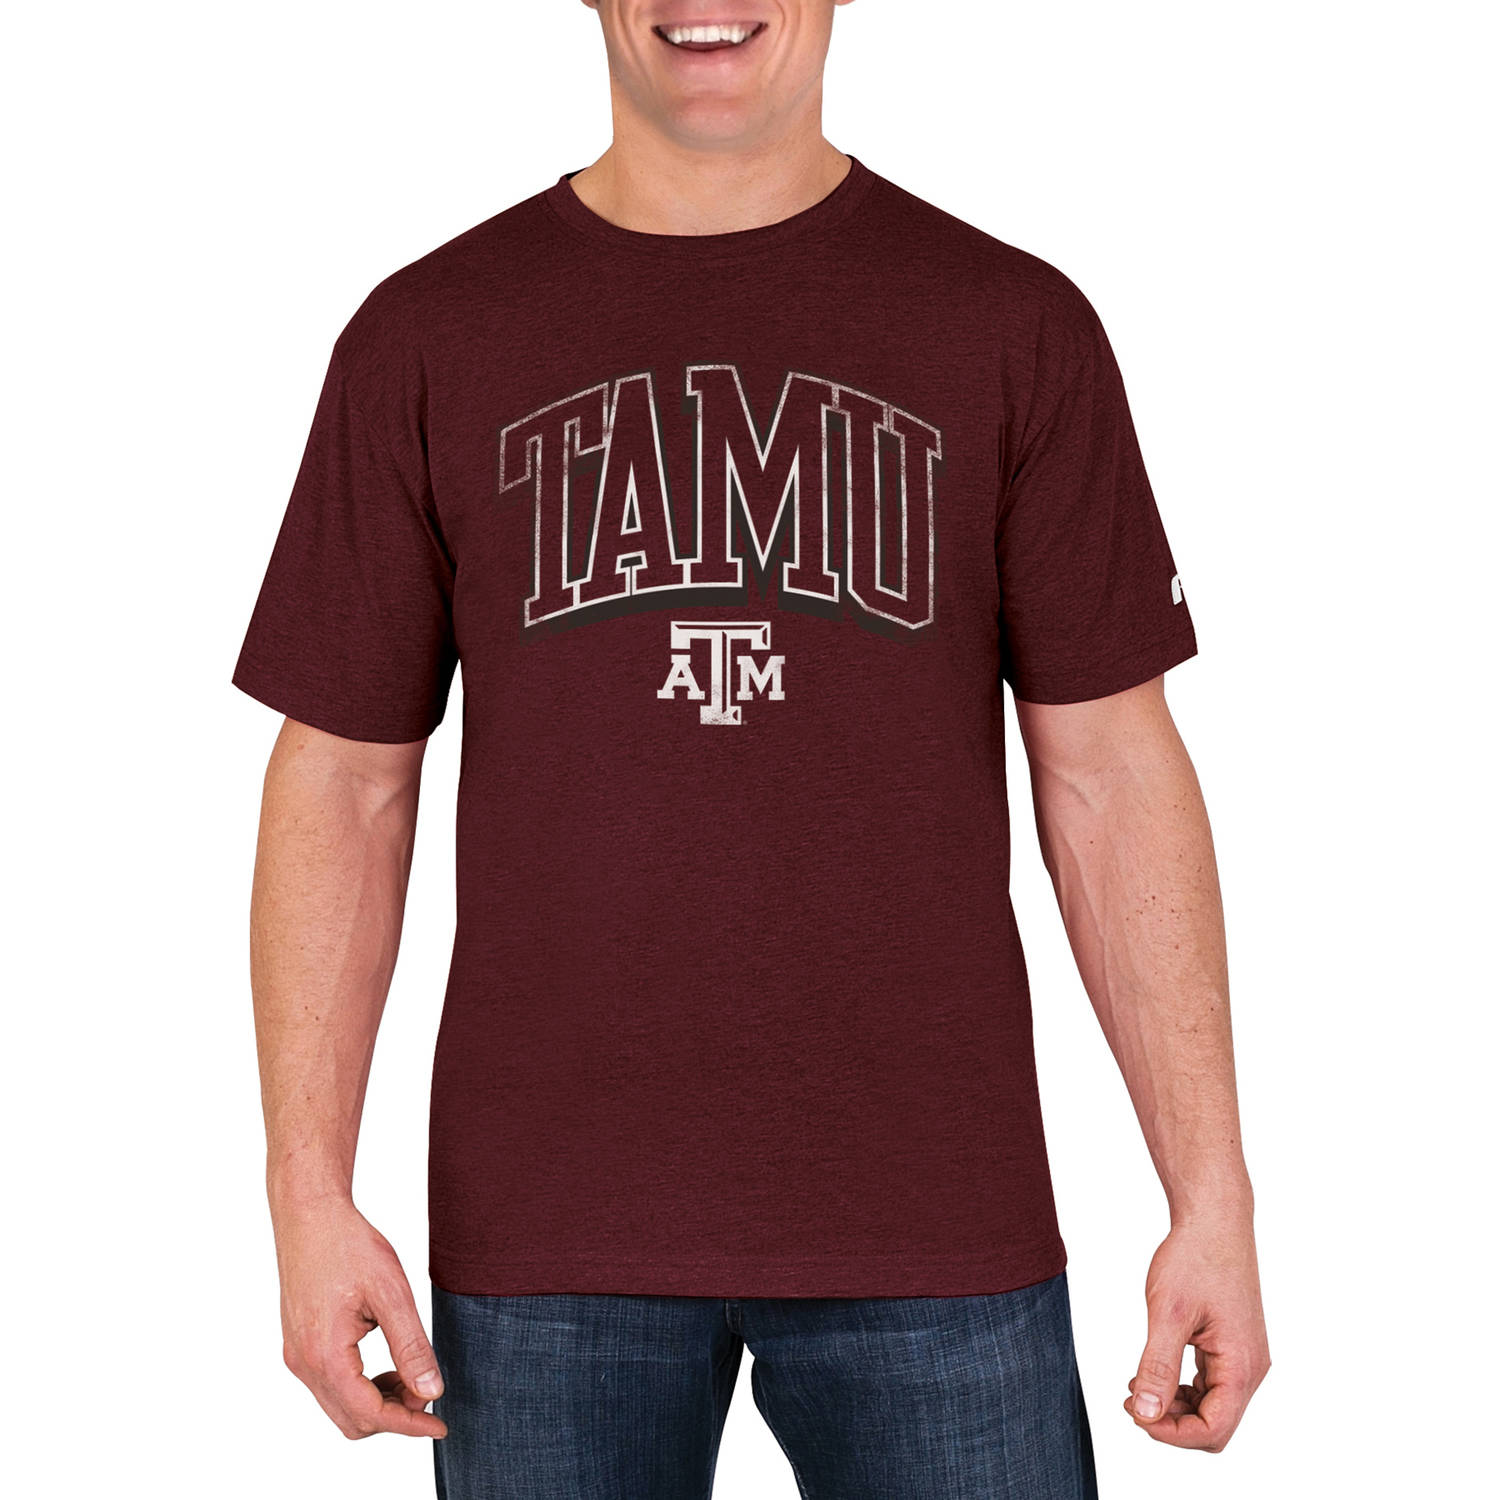 NCAA Texas A&M Aggies Men's Cotton/Poly Blend T-Shirt